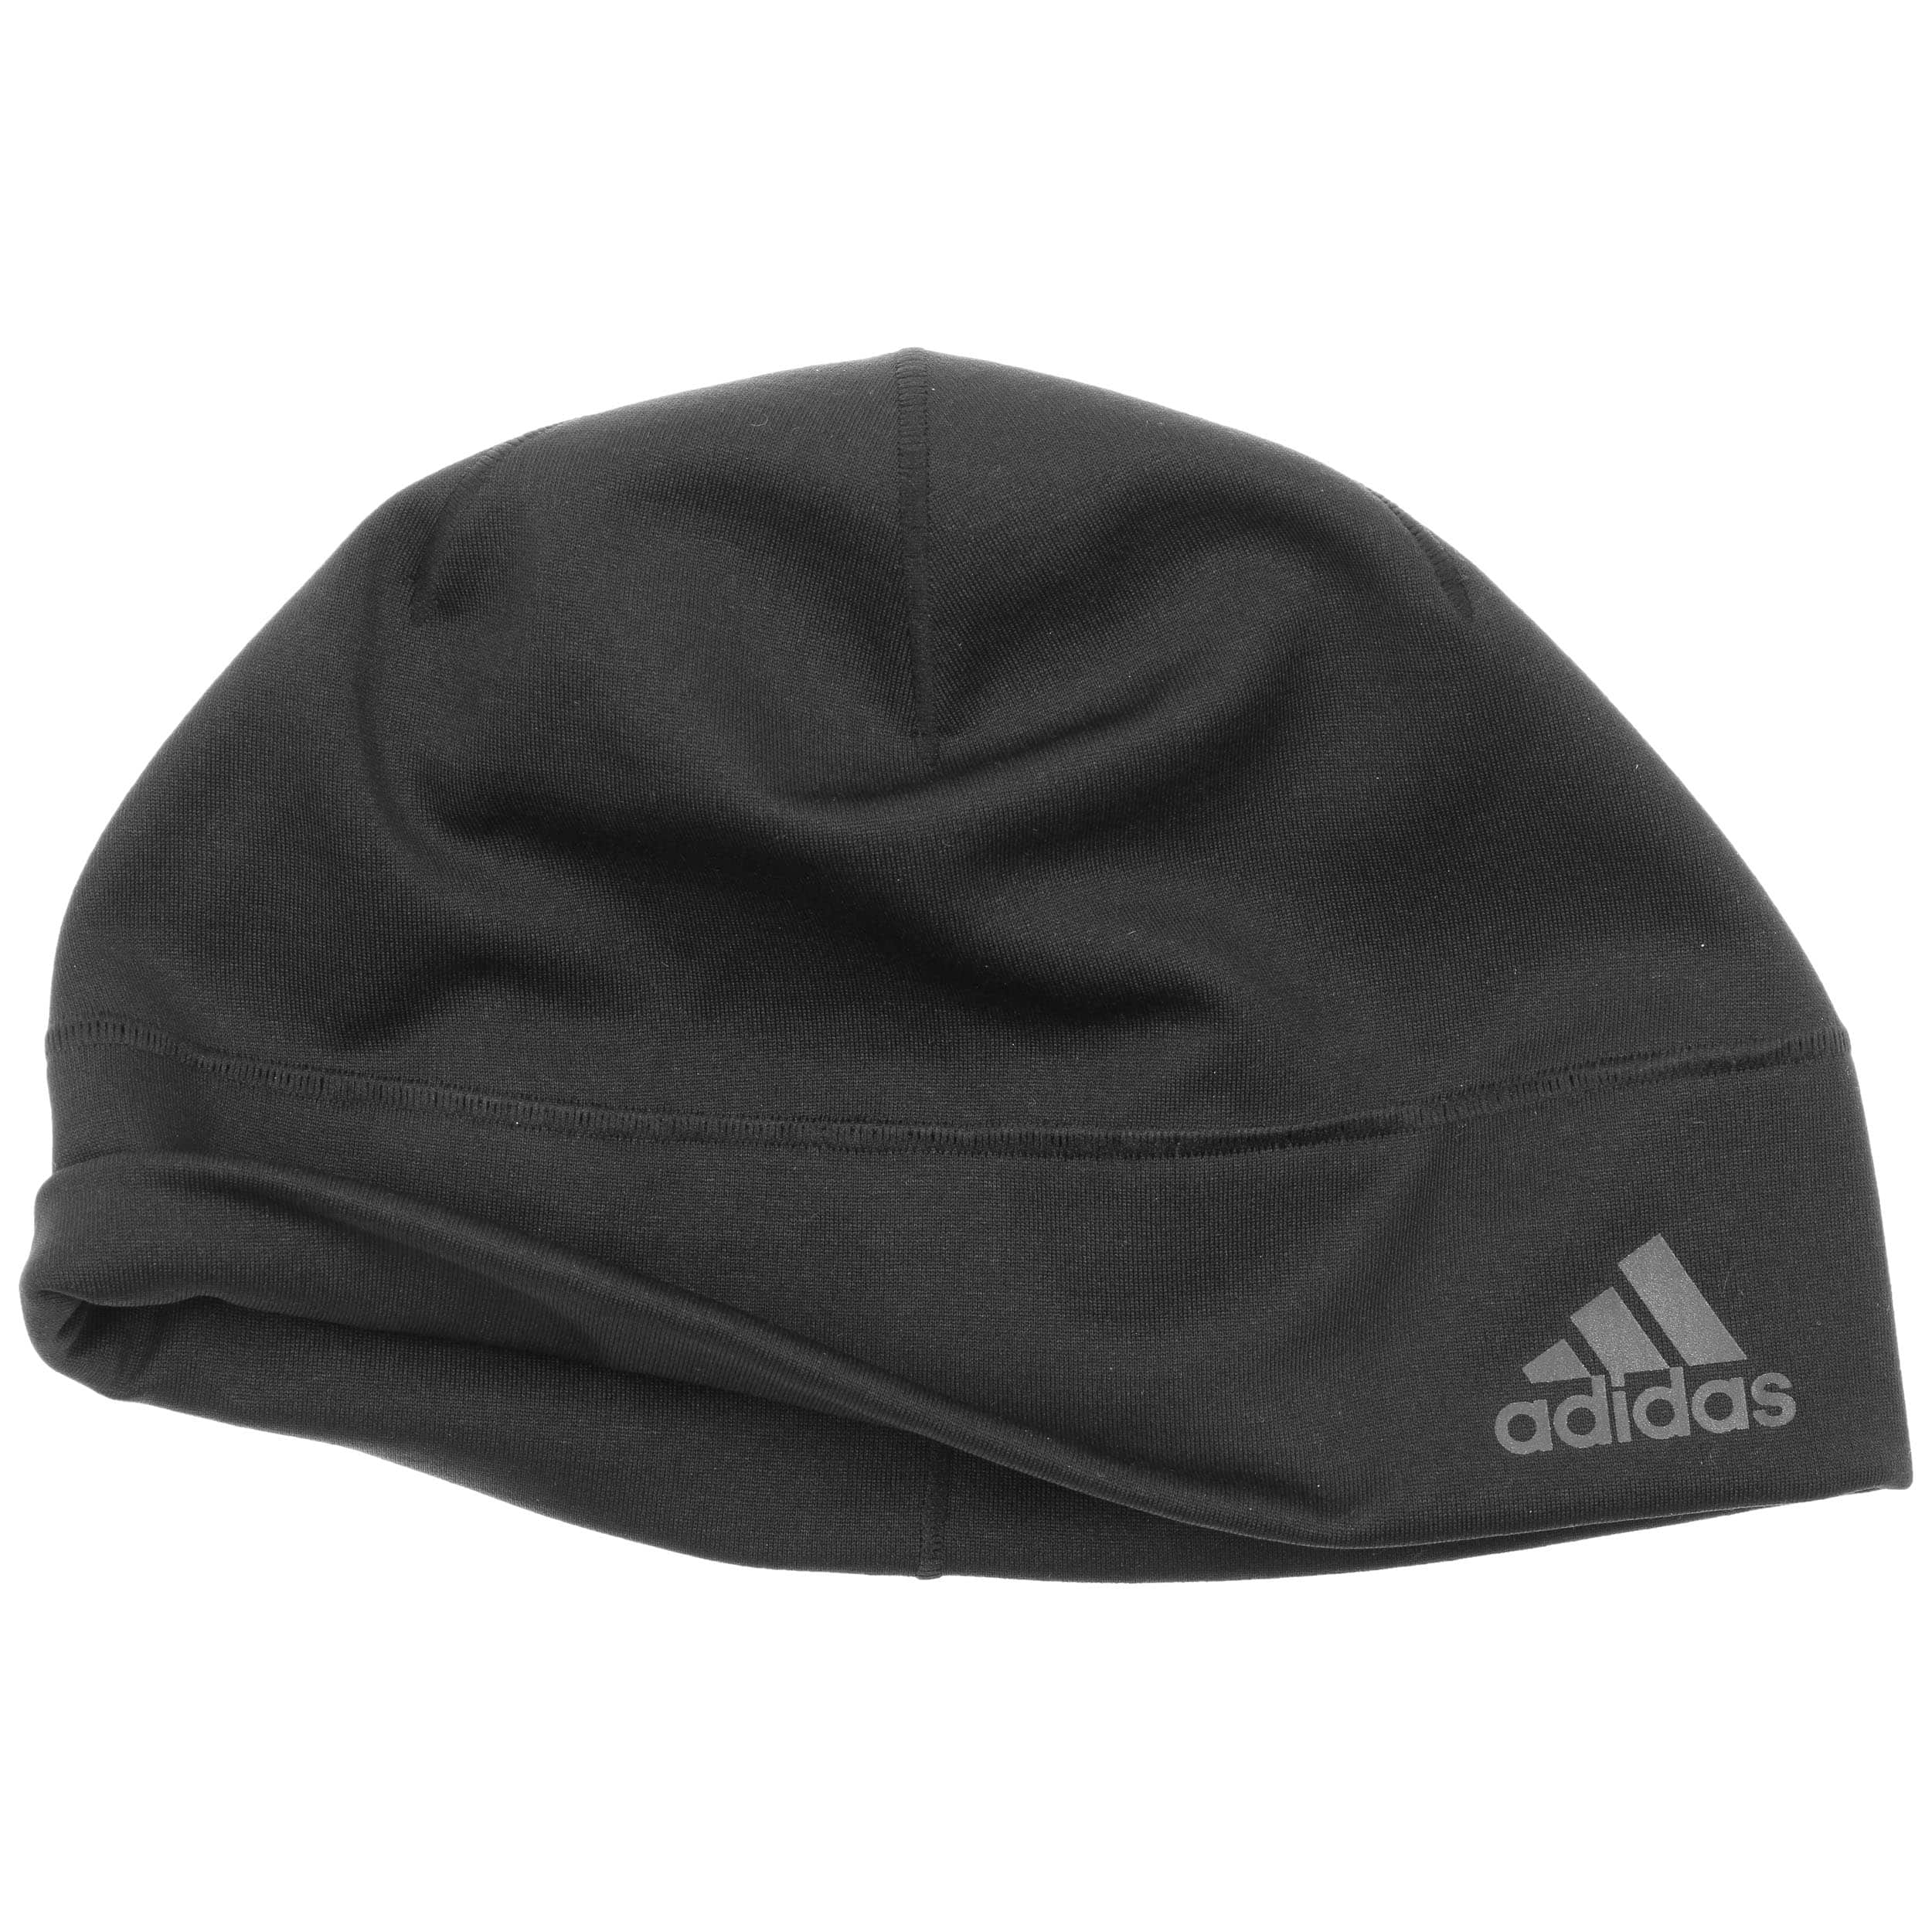 ... Berretto Climaheat Performance by adidas - nero 1 ... 4bb6d4a4cb75